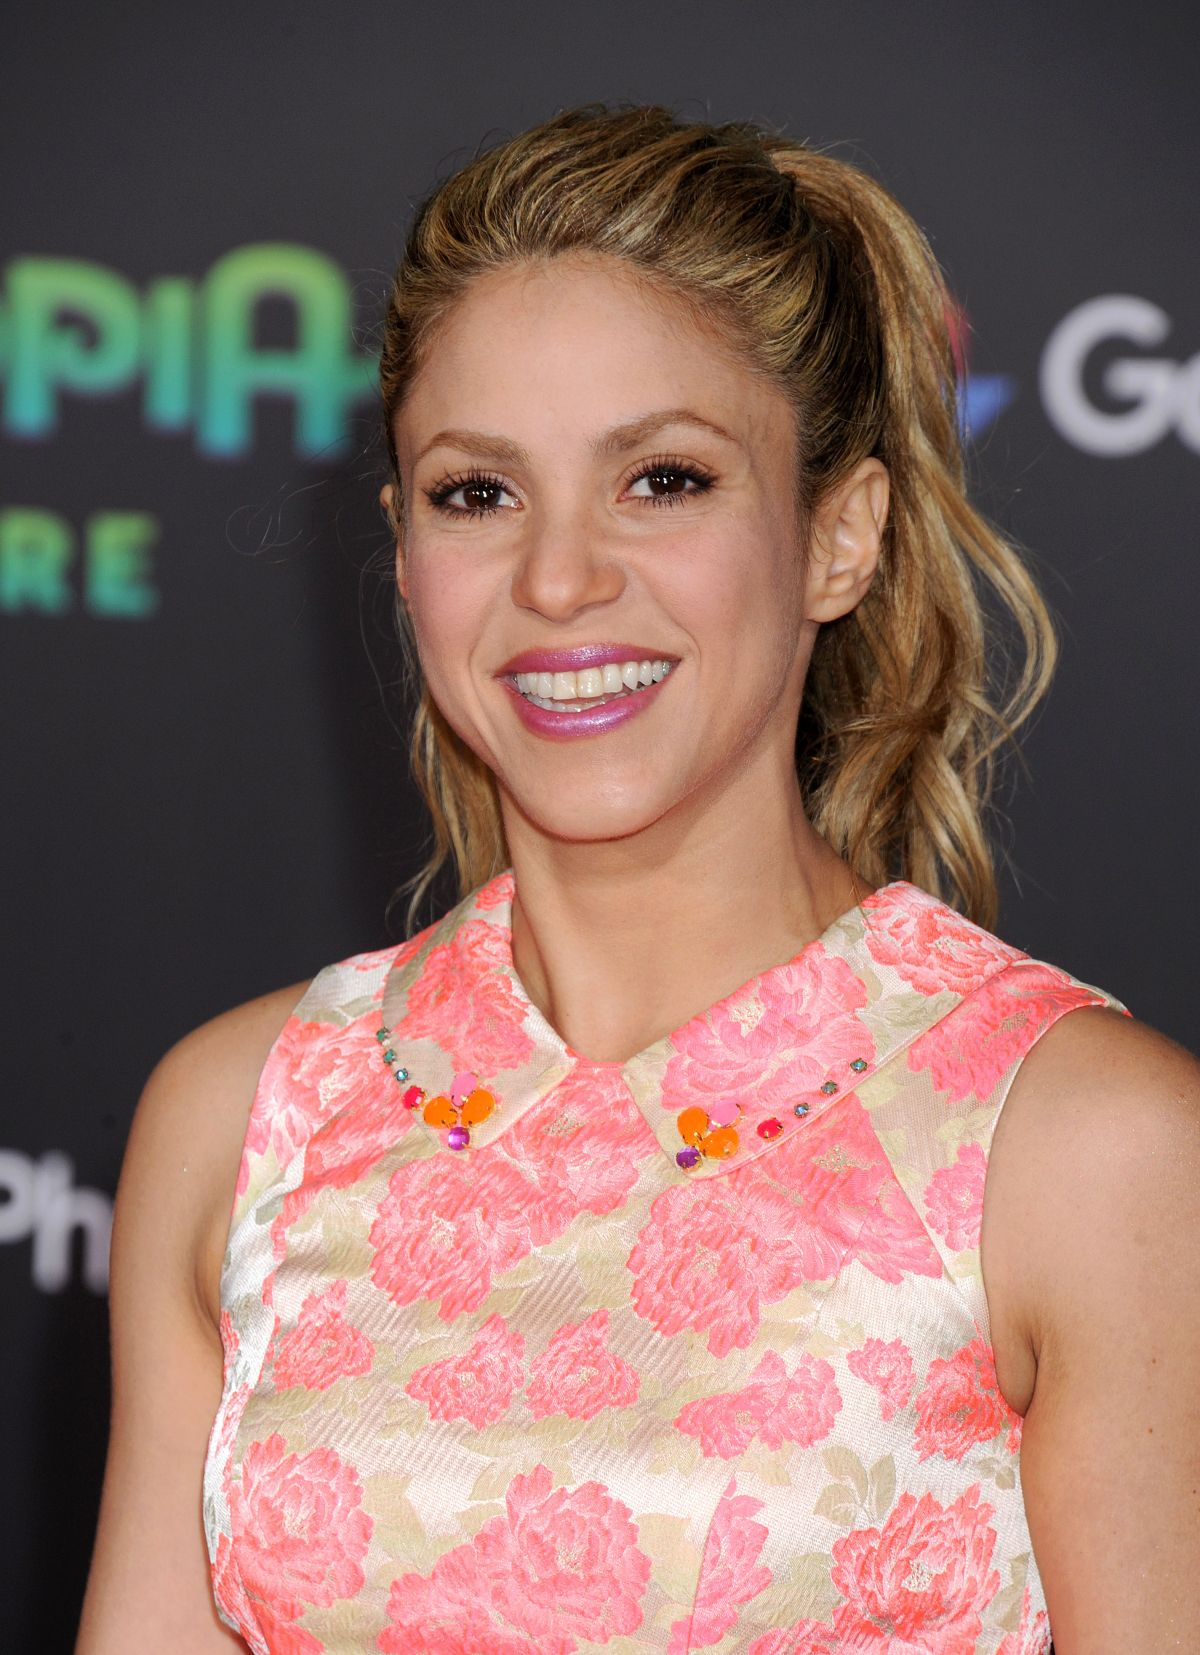 Shakira At Zootopia Premiere In Los Angeles 02 17 2016